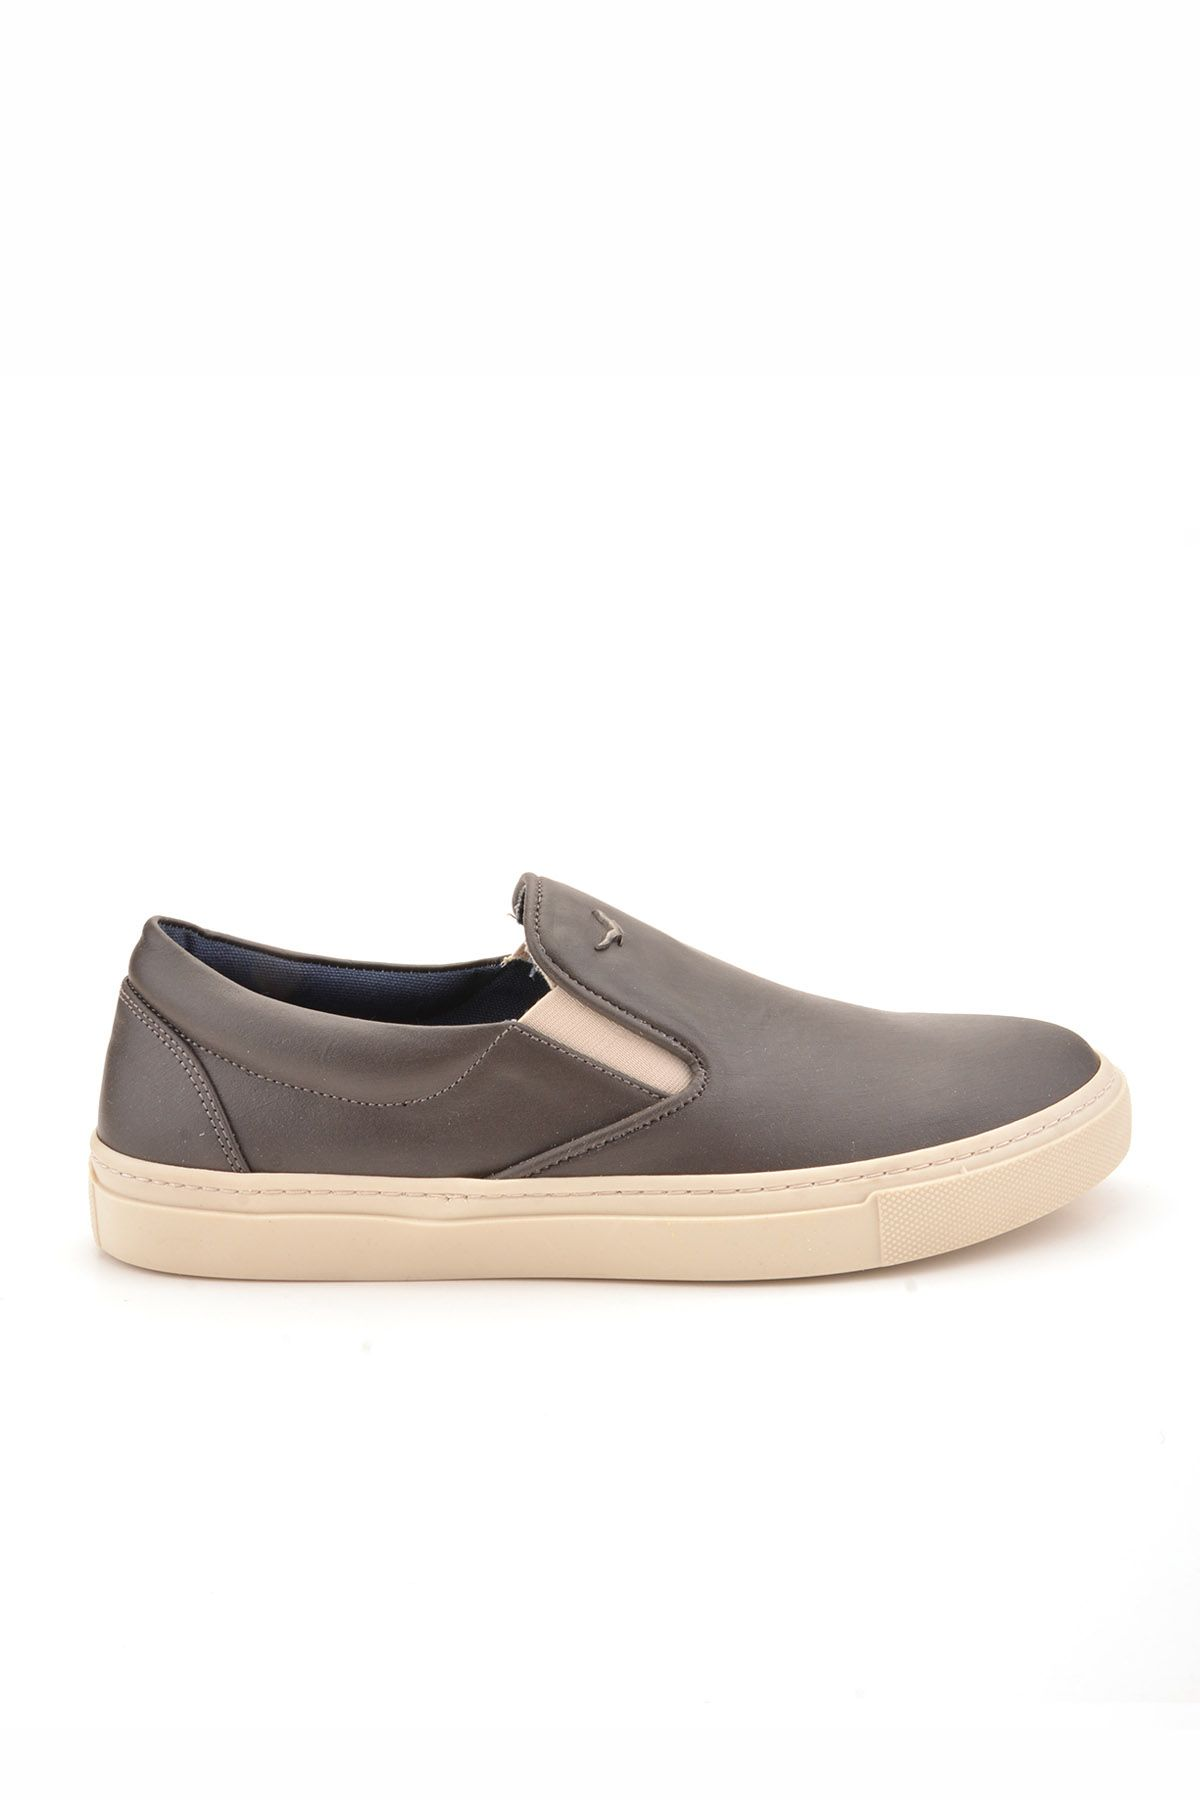 Art Goya Women Sneakers From Genuine Leather Gray